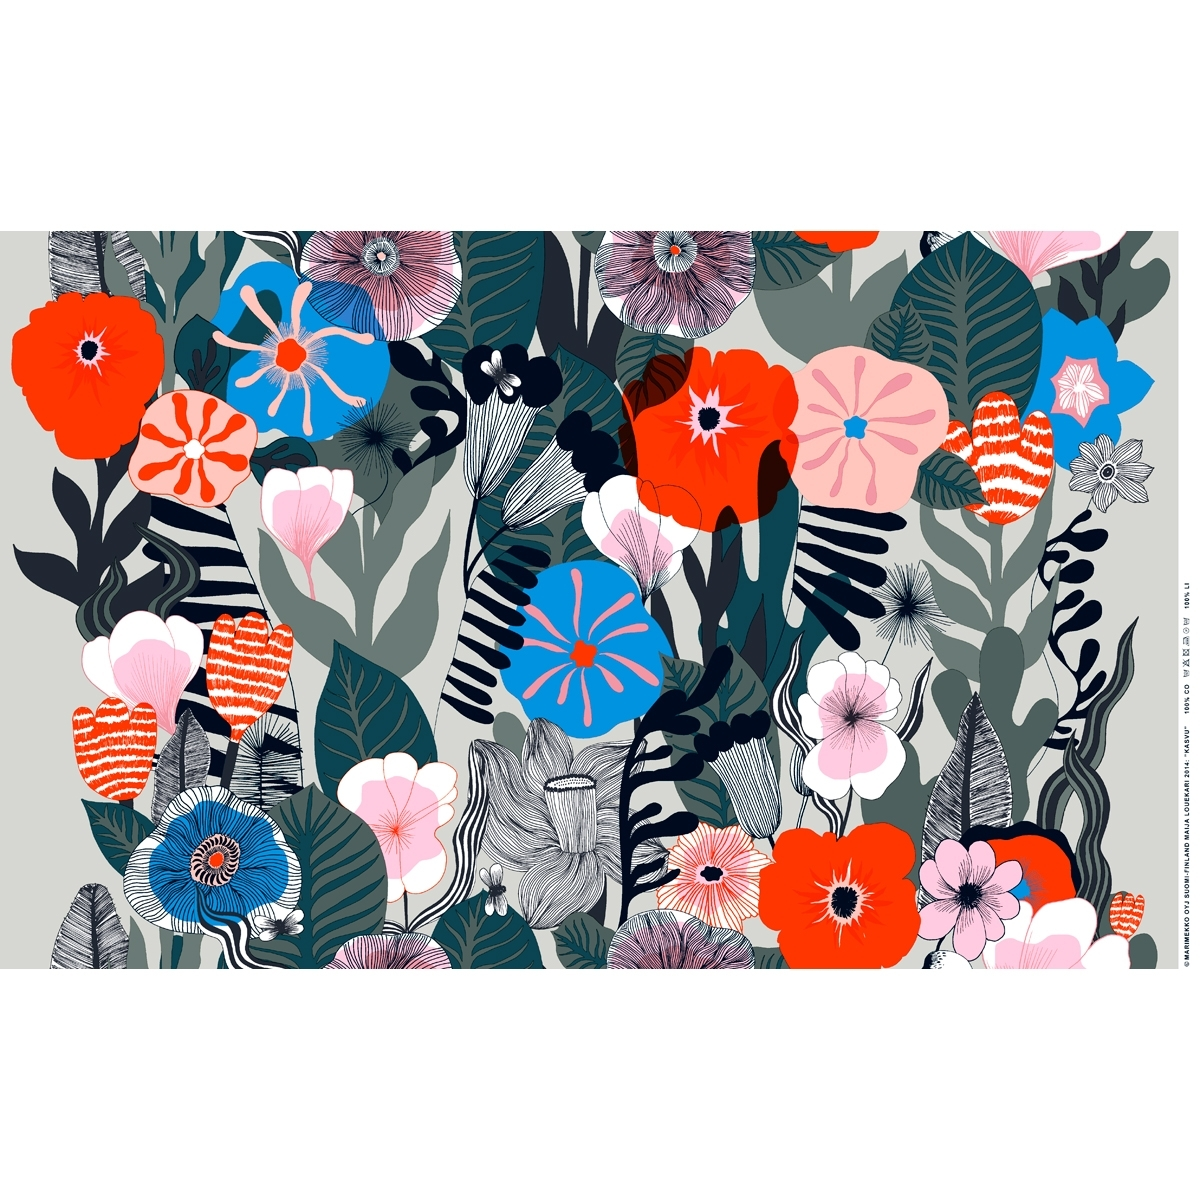 Marimekko Kasvu Grey Pvc Fabric 35 1,200×1,200 Pixels | Home With Best And Newest Marimekko 'karkuteilla' Fabric Wall Art (Gallery 7 of 15)